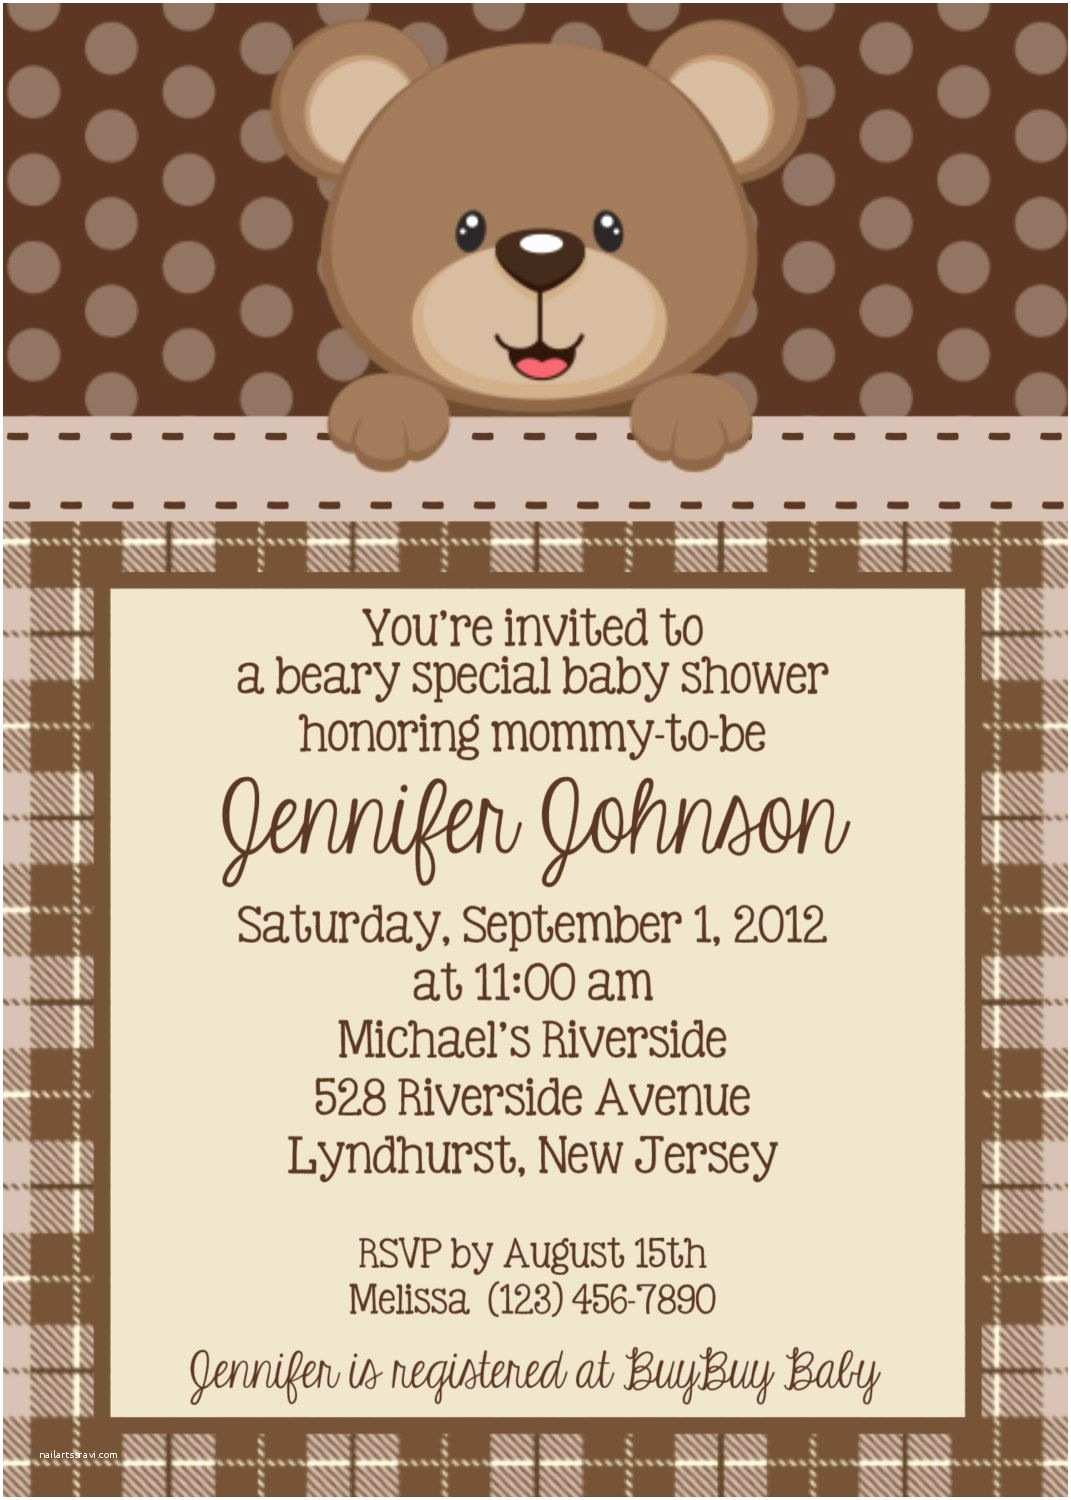 Personalized Baby Shower Invitations Teddy Bear Invitation Personalized Custom Teddy Bear